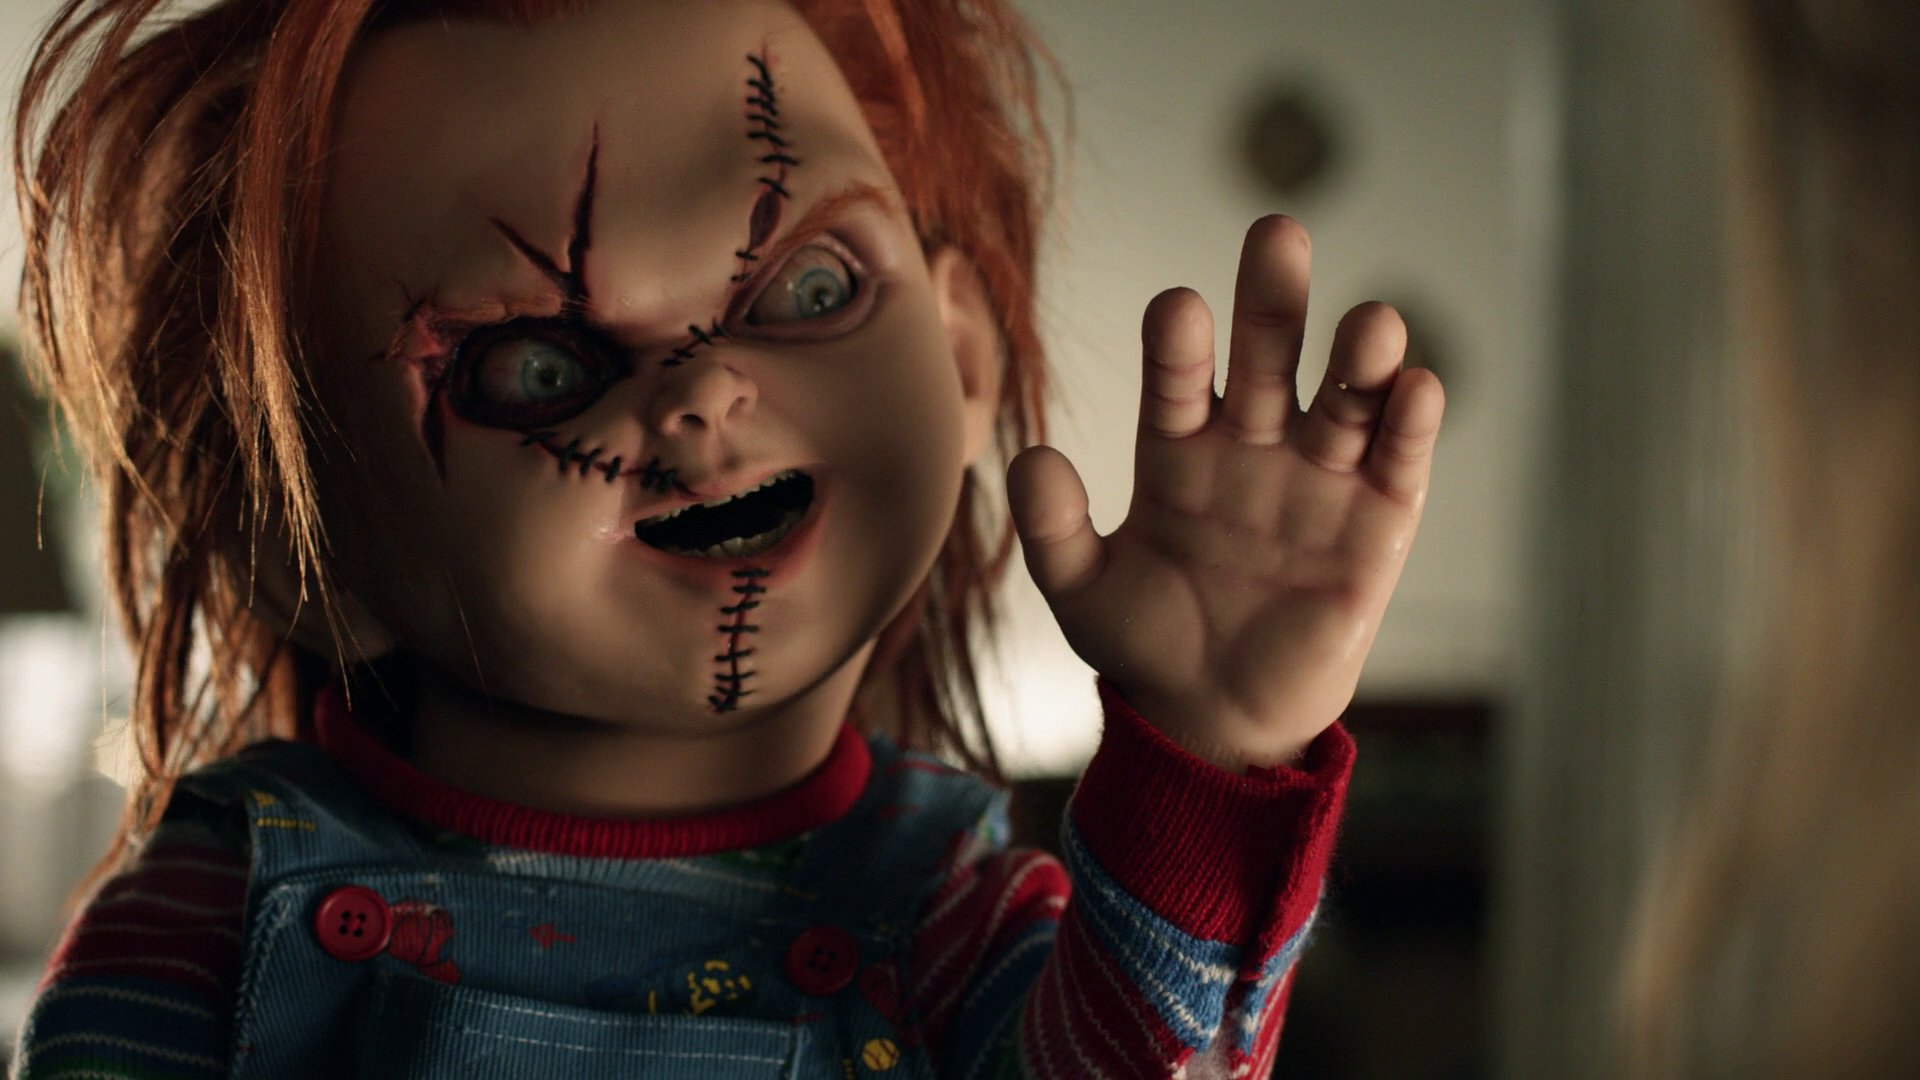 The Producers Of The Recent It Remake Are Now Behind A Chucky Reboot